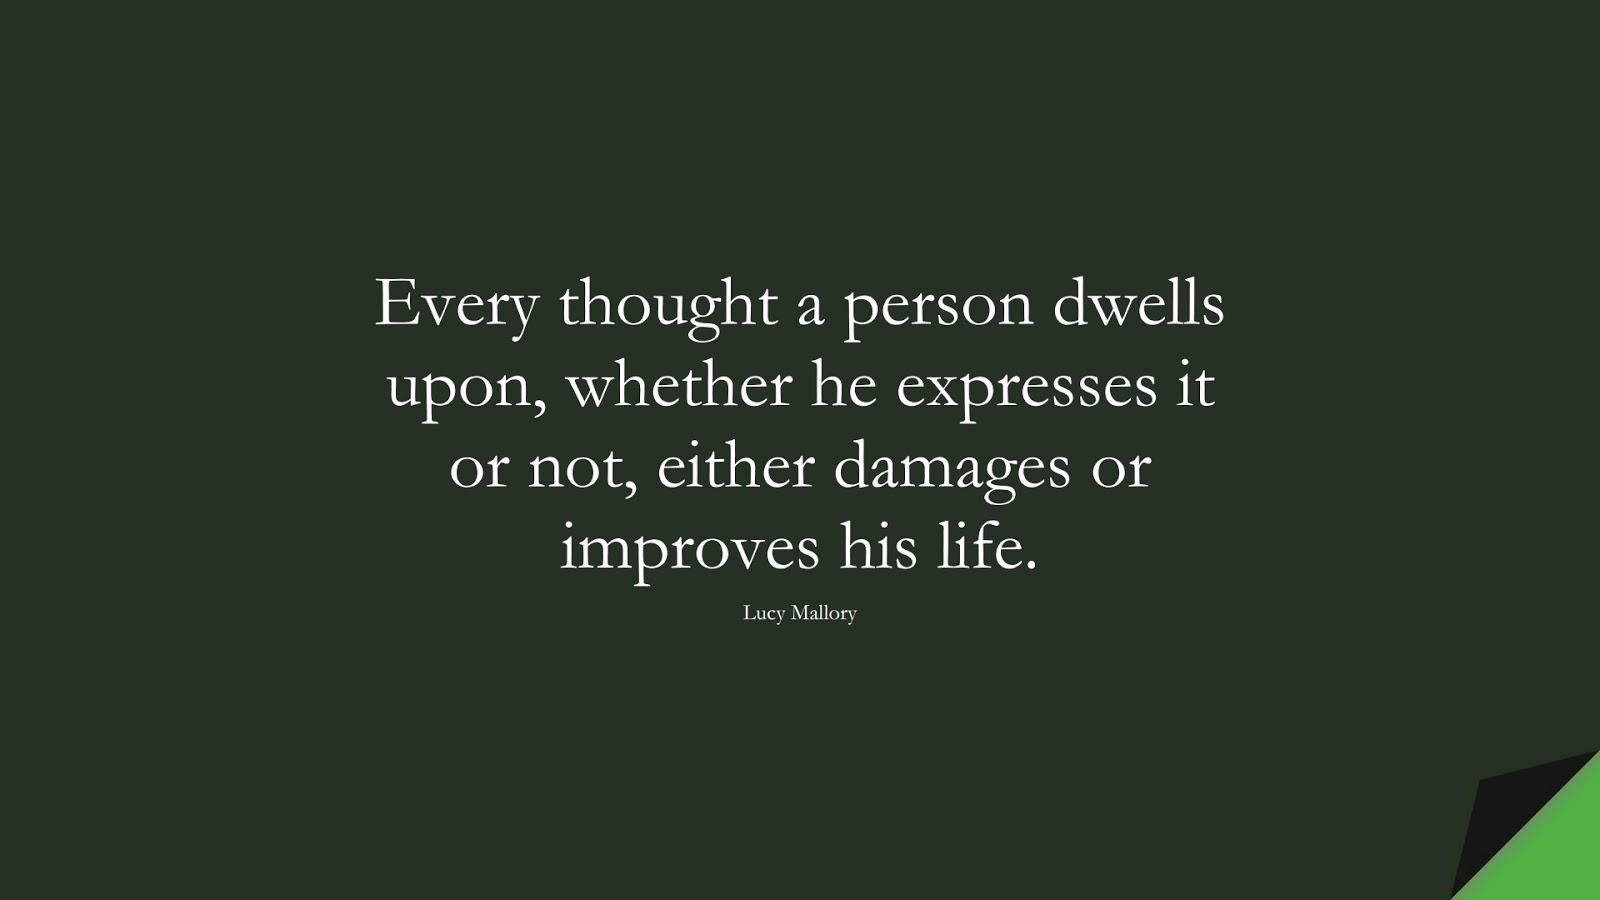 Every thought a person dwells upon, whether he expresses it or not, either damages or improves his life. (Lucy Mallory);  #DepressionQuotes